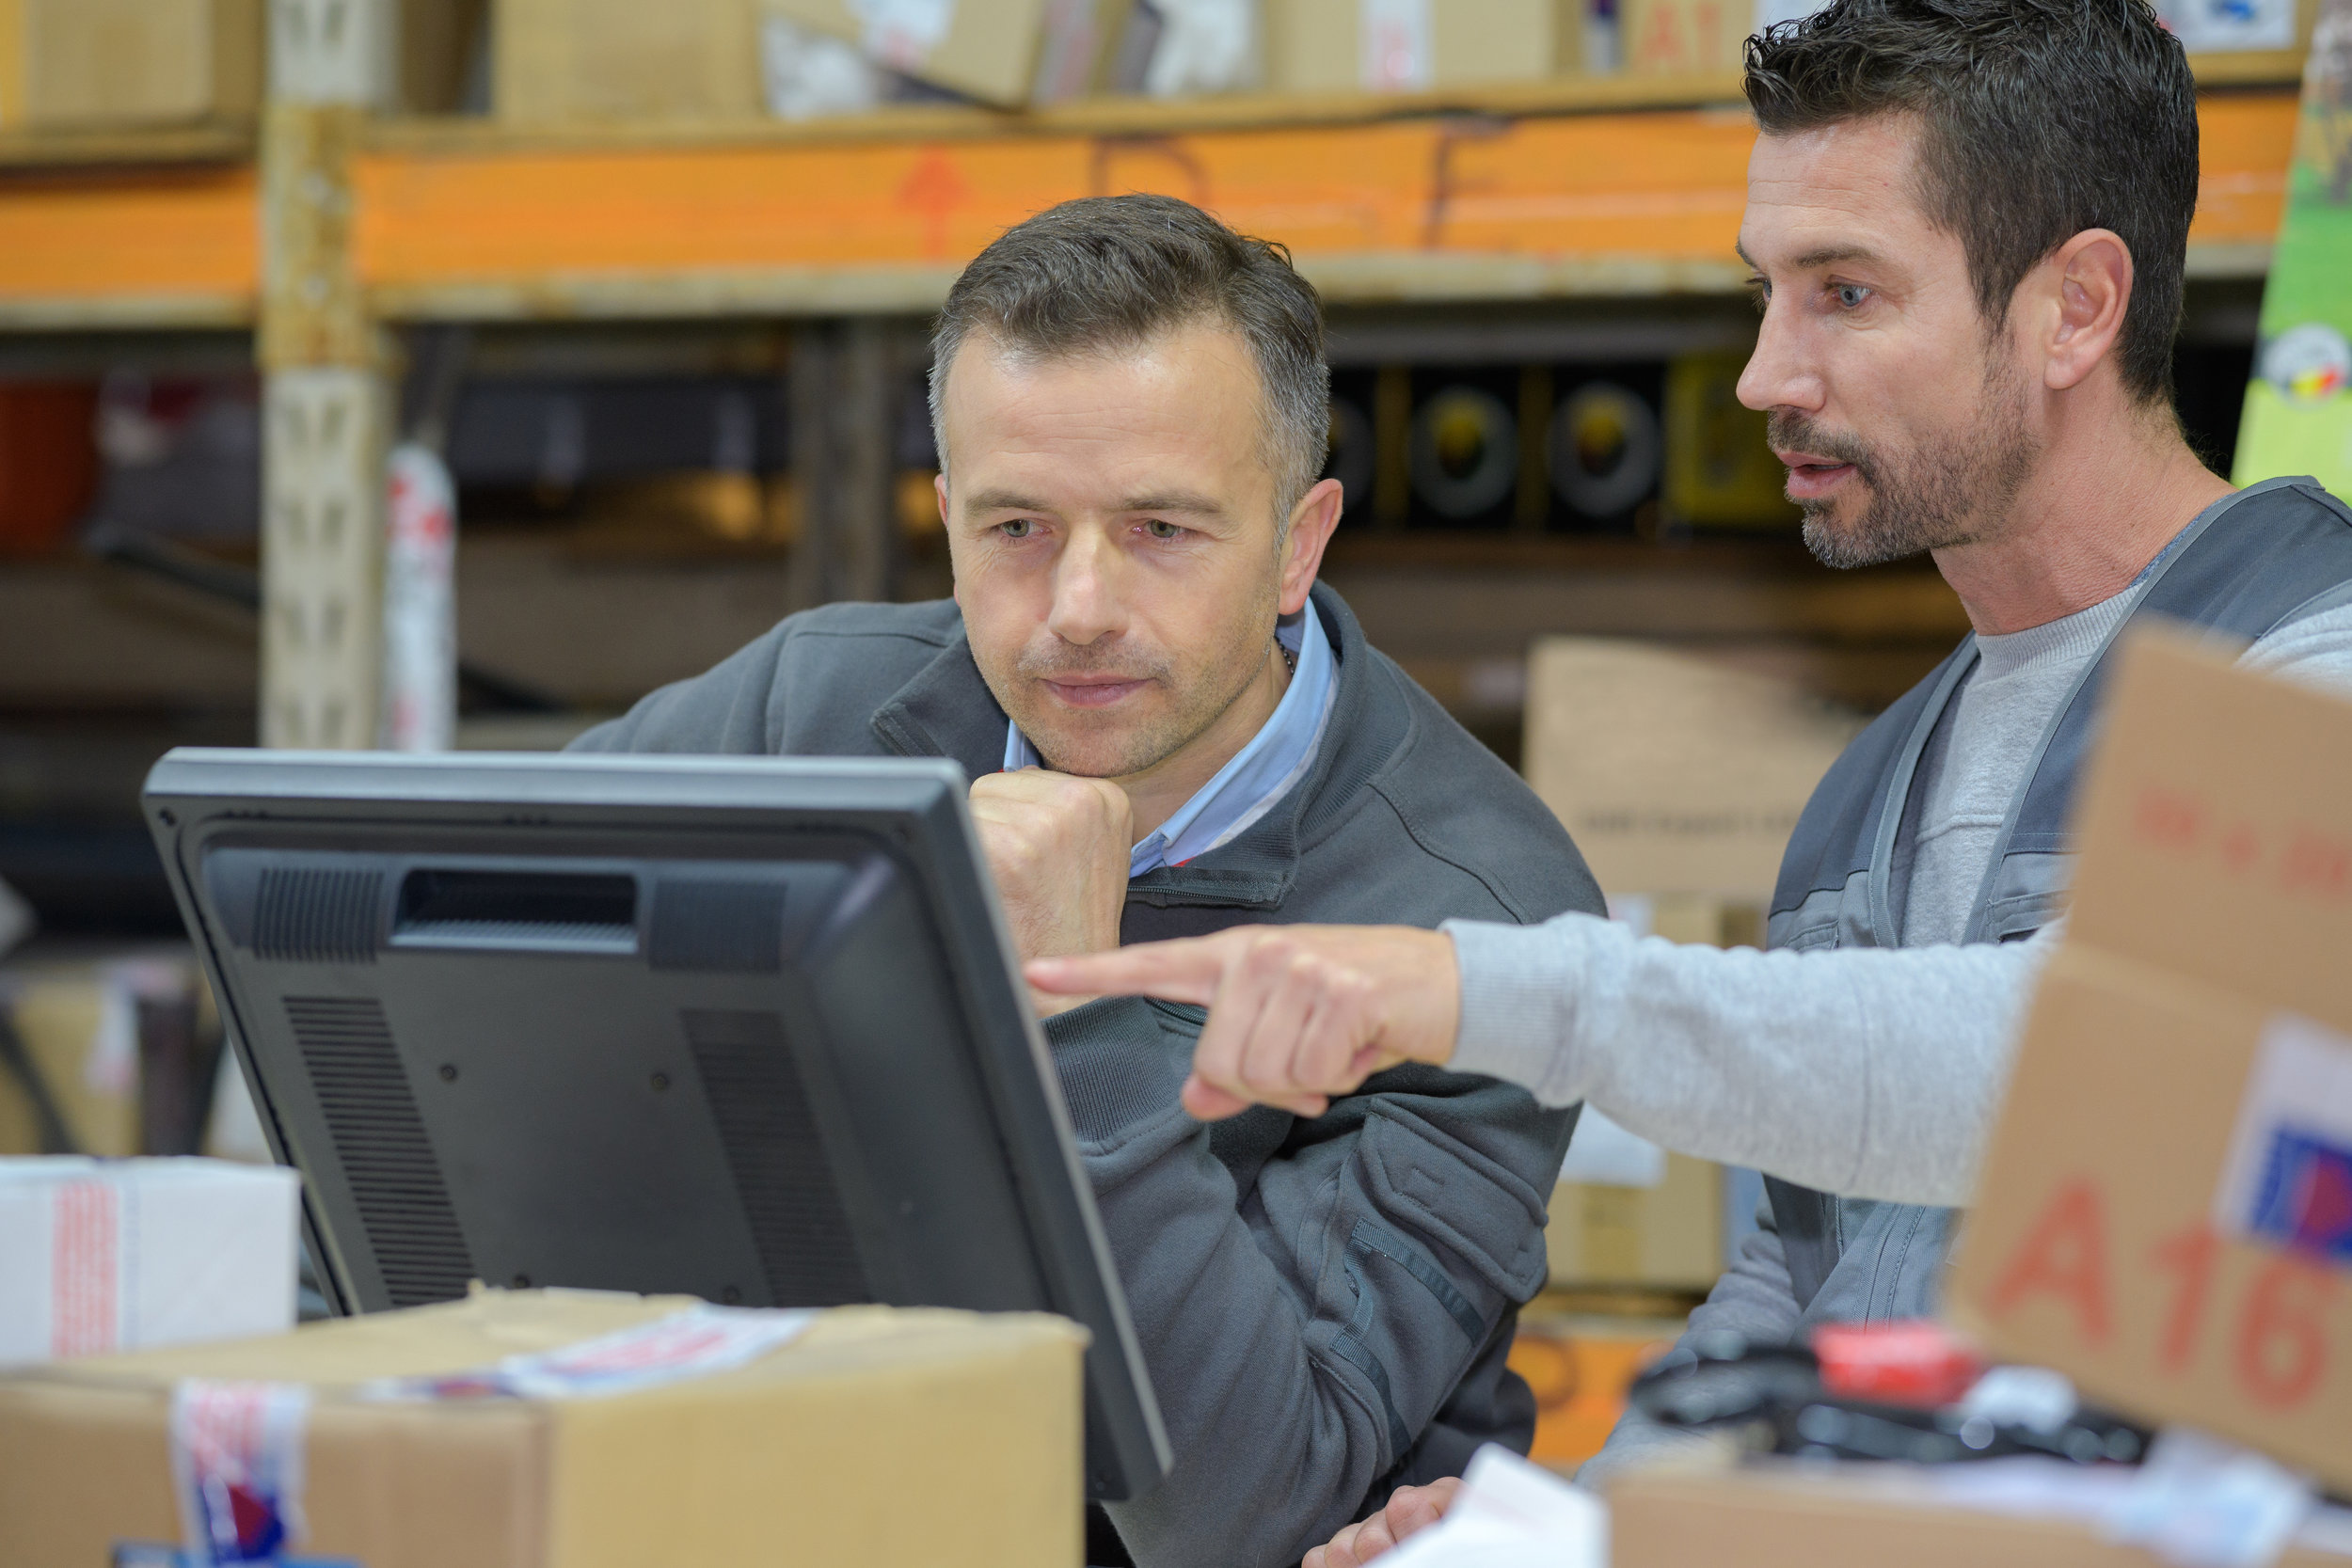 Warehouse Fulfillment: 12 Things to Know